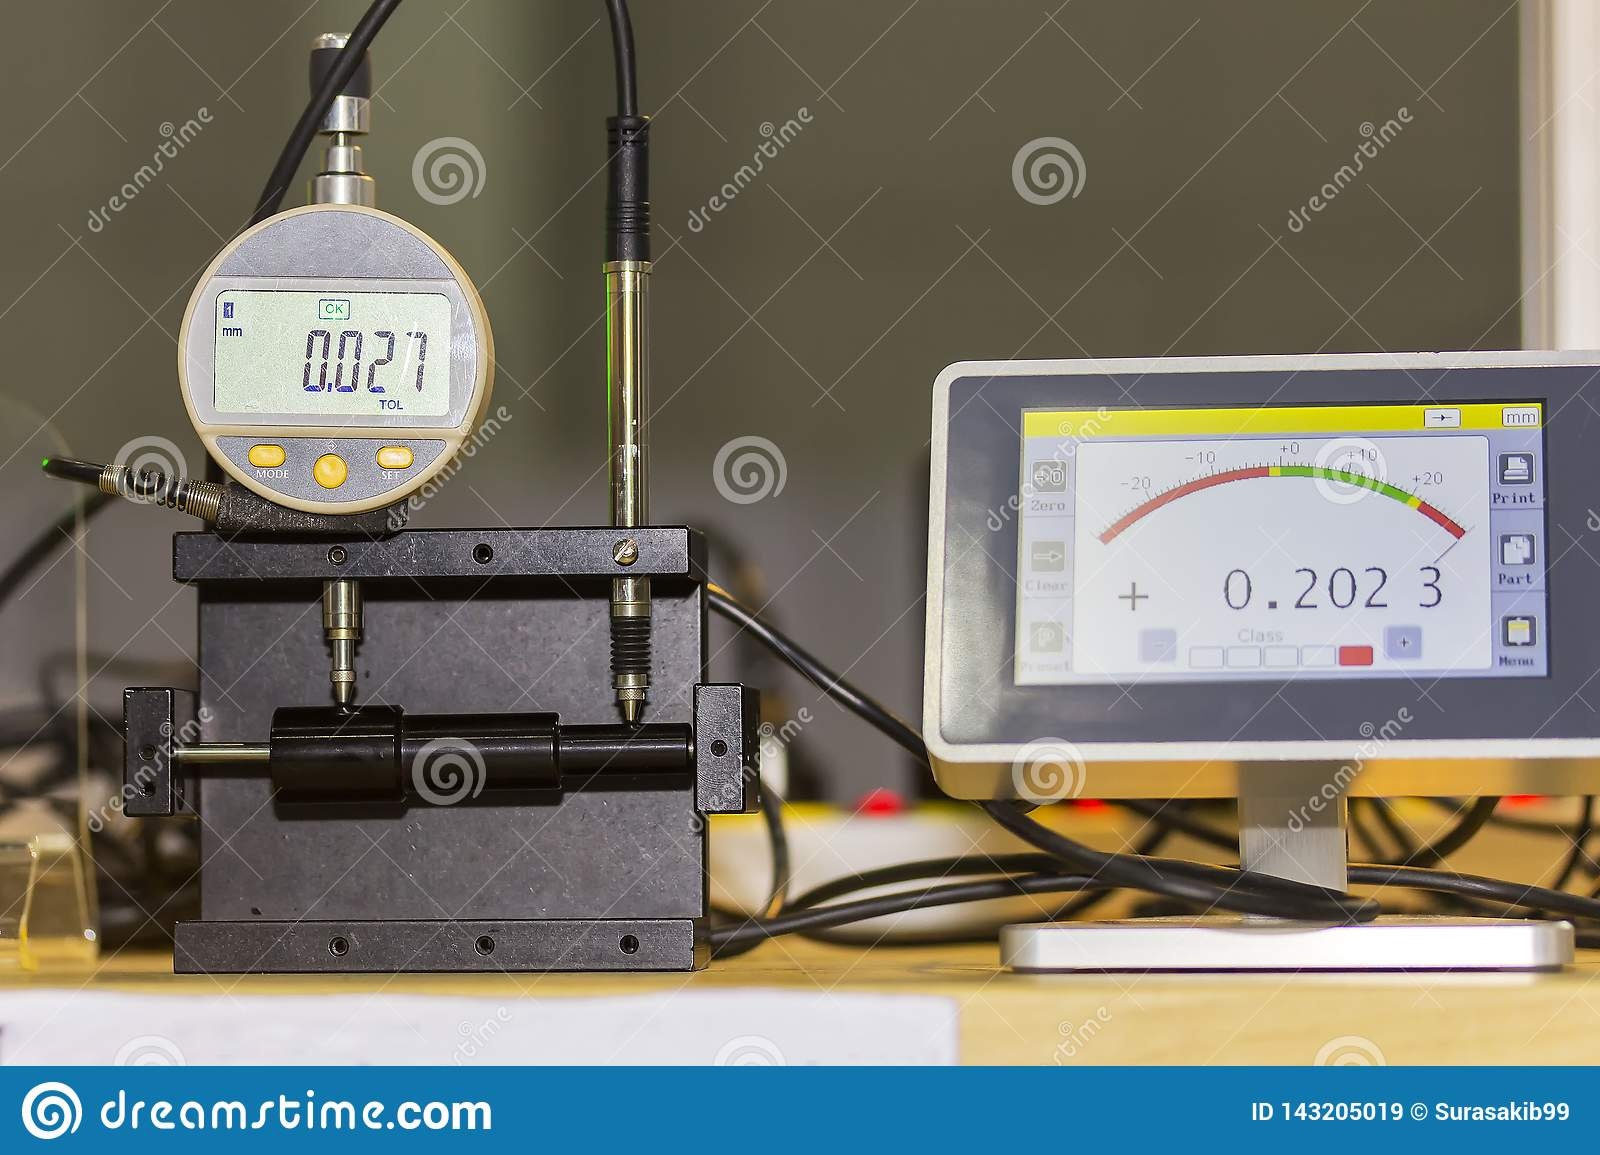 High accuracy and modern of digital gauges with probe and touch screen monitor for dimension measuring for industrial work